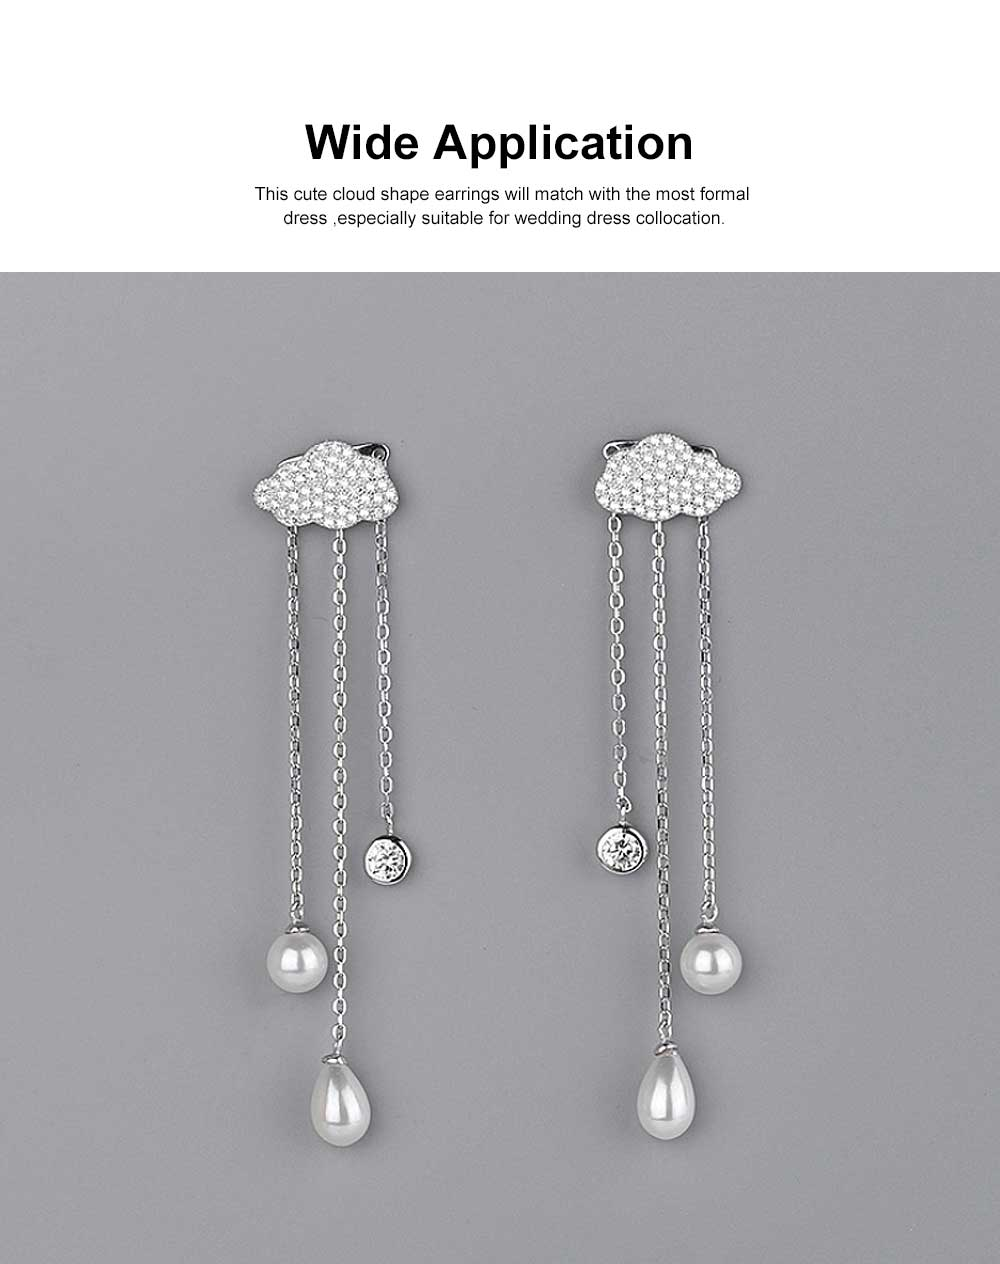 Women's Luxury Cloud Shape Sterling Silver Earrings, Dangling Temperament Pearl Long Pendant, Irregular Elegant Earring 2